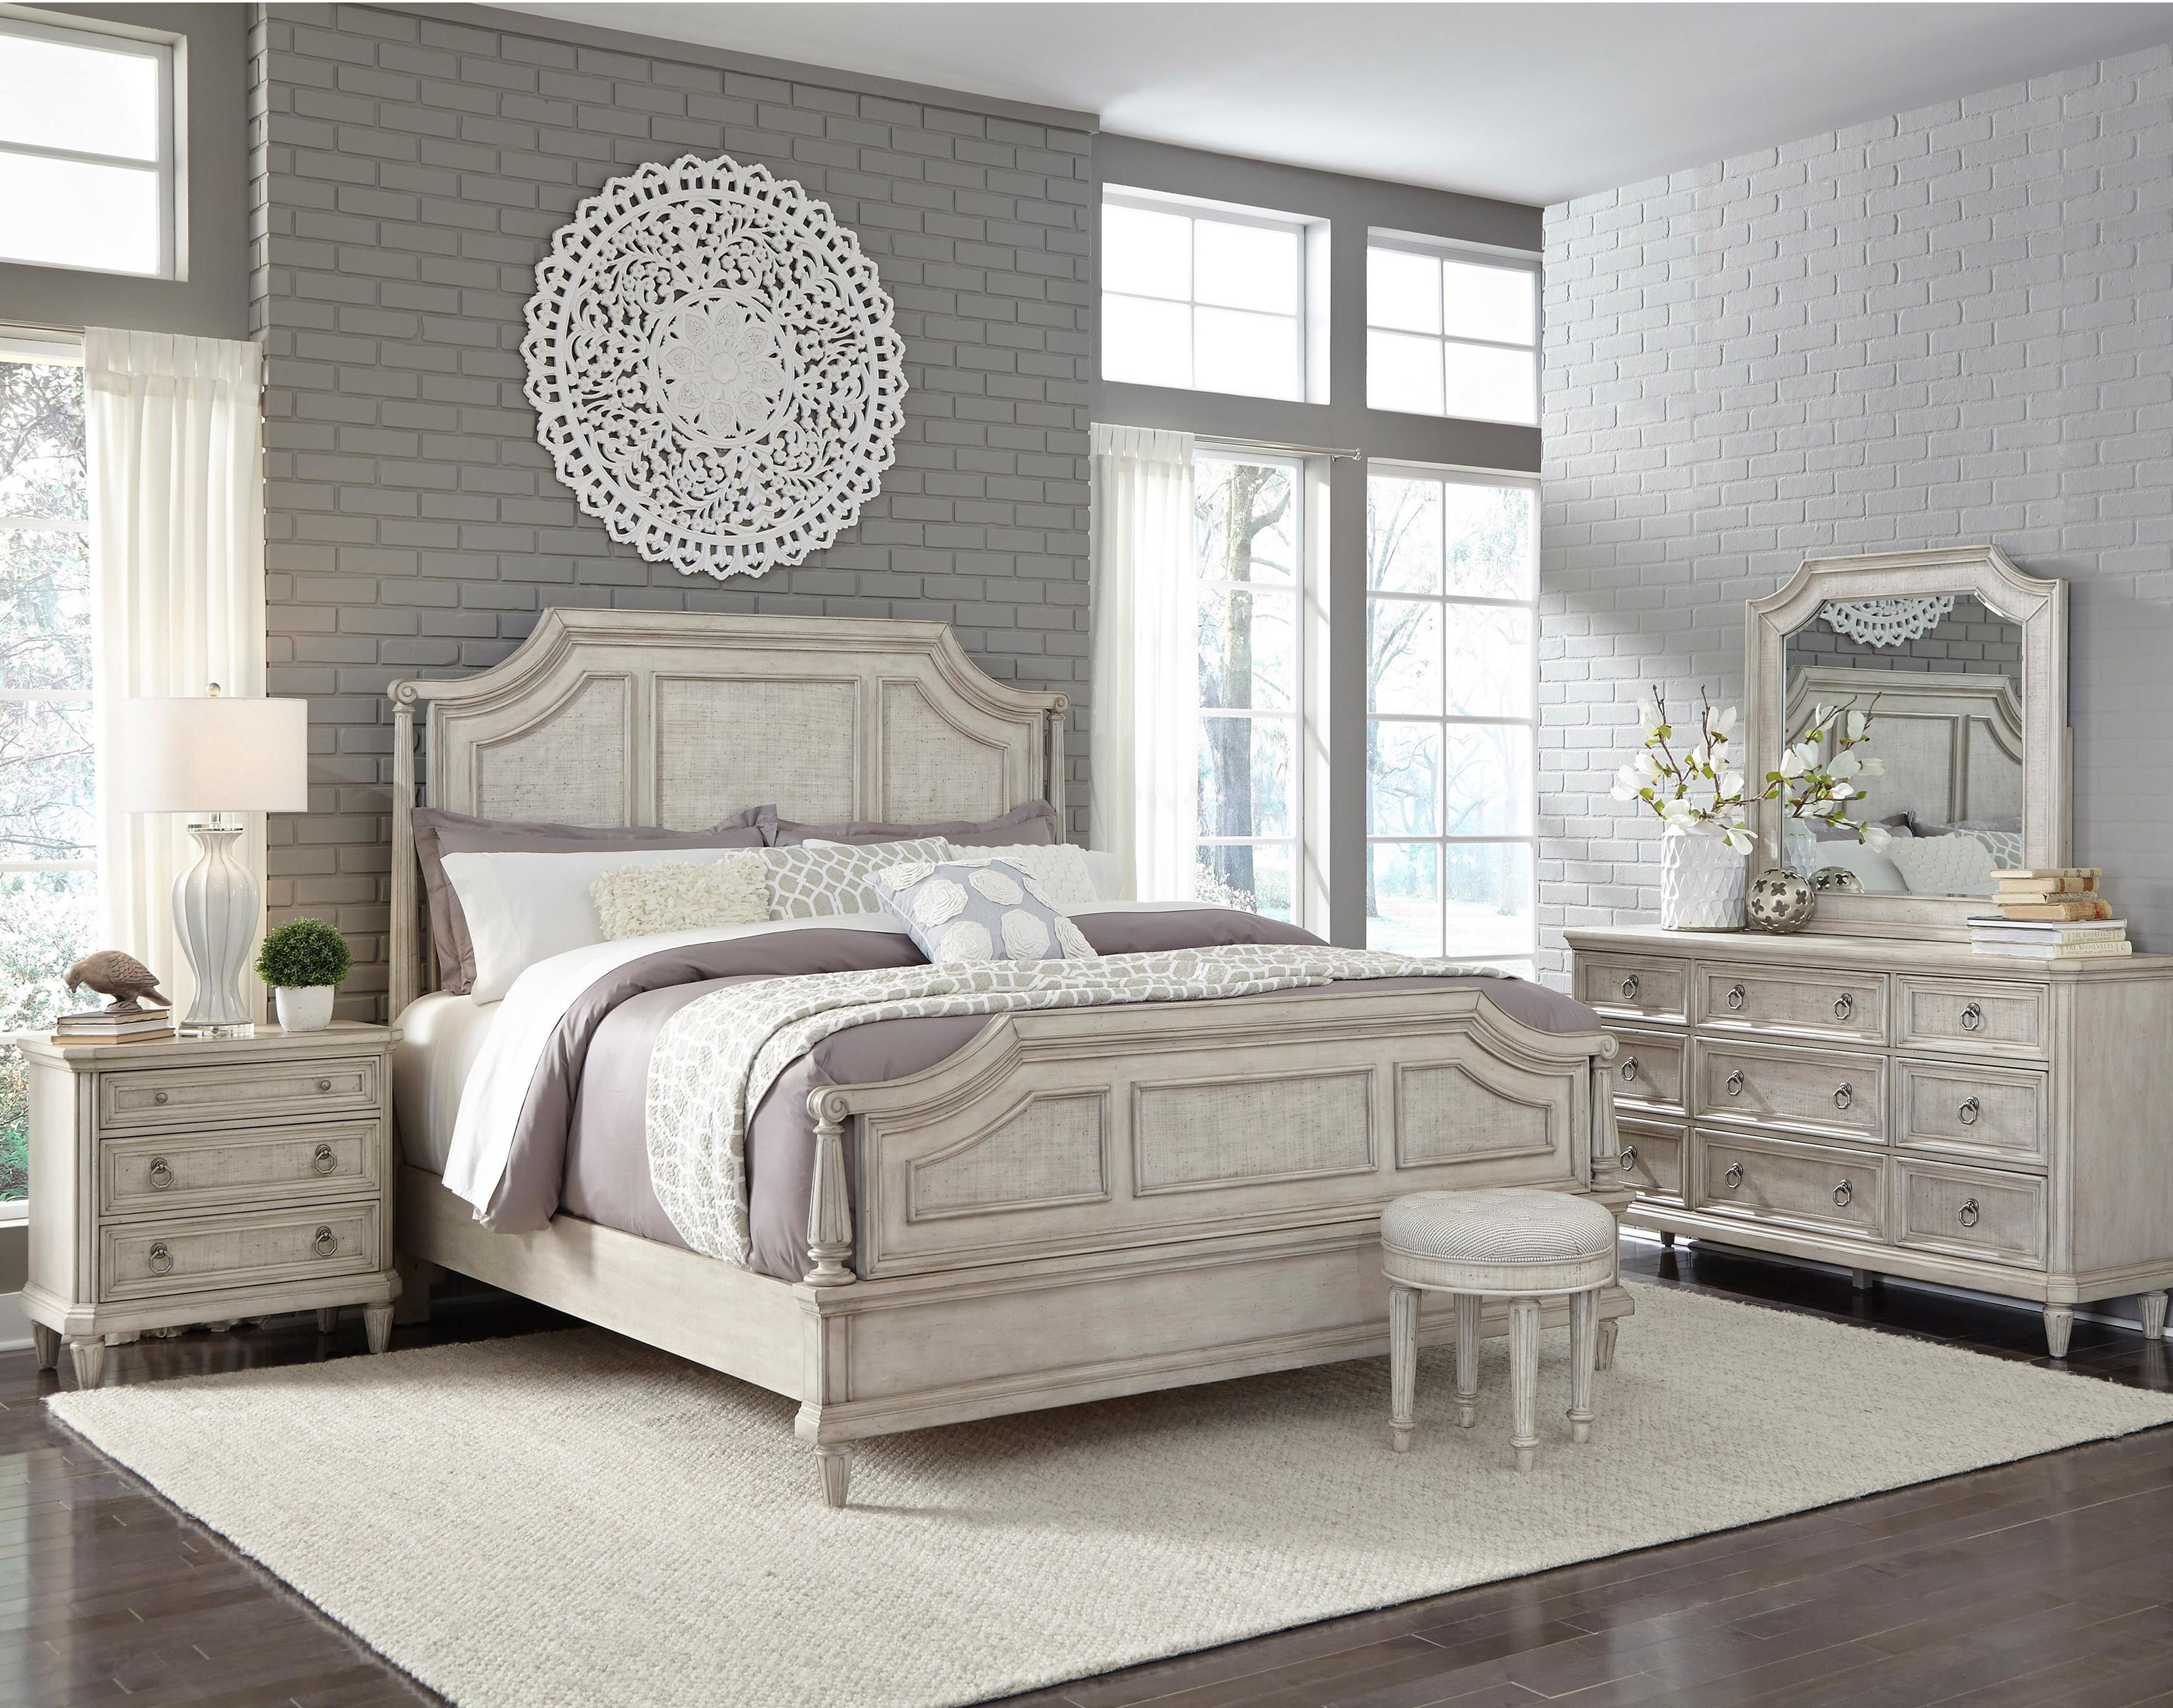 Pulaski Furniture Campbell StreetKing Bed, Dresser, Mirror, And Nightstand  Wi